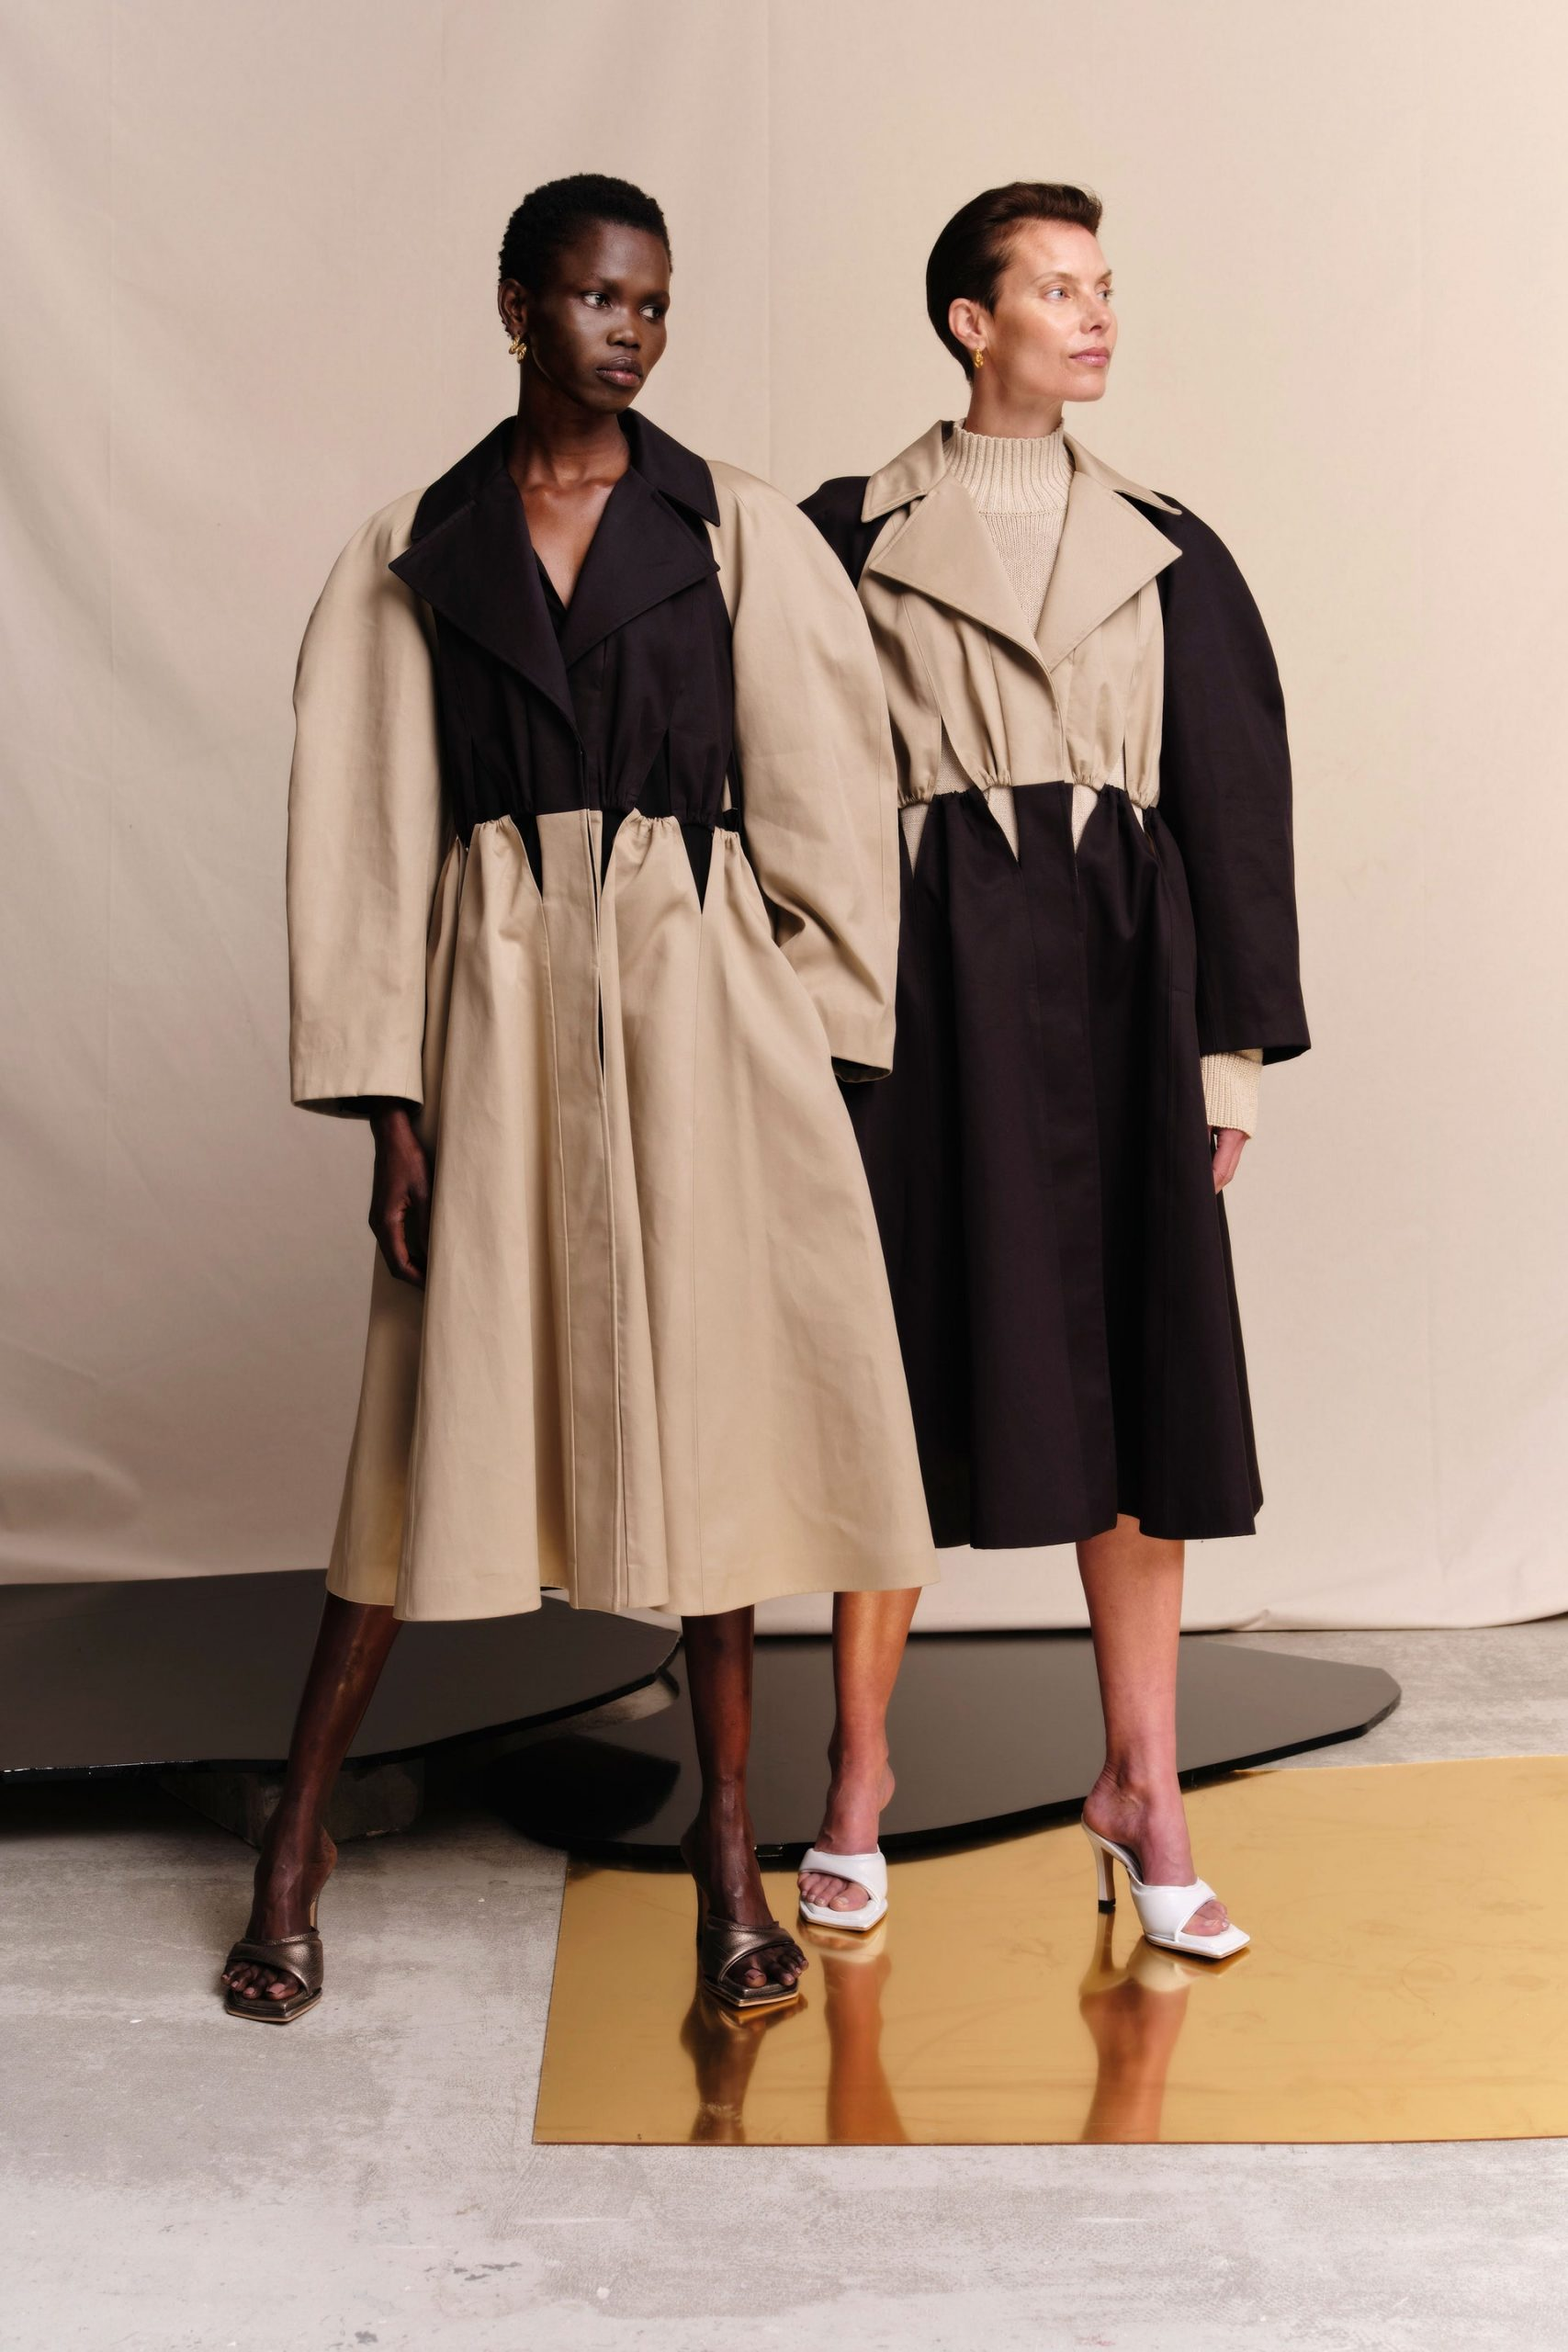 A look from Palmer Harding's spring 2022 collection. Photo credit Vogue Runway